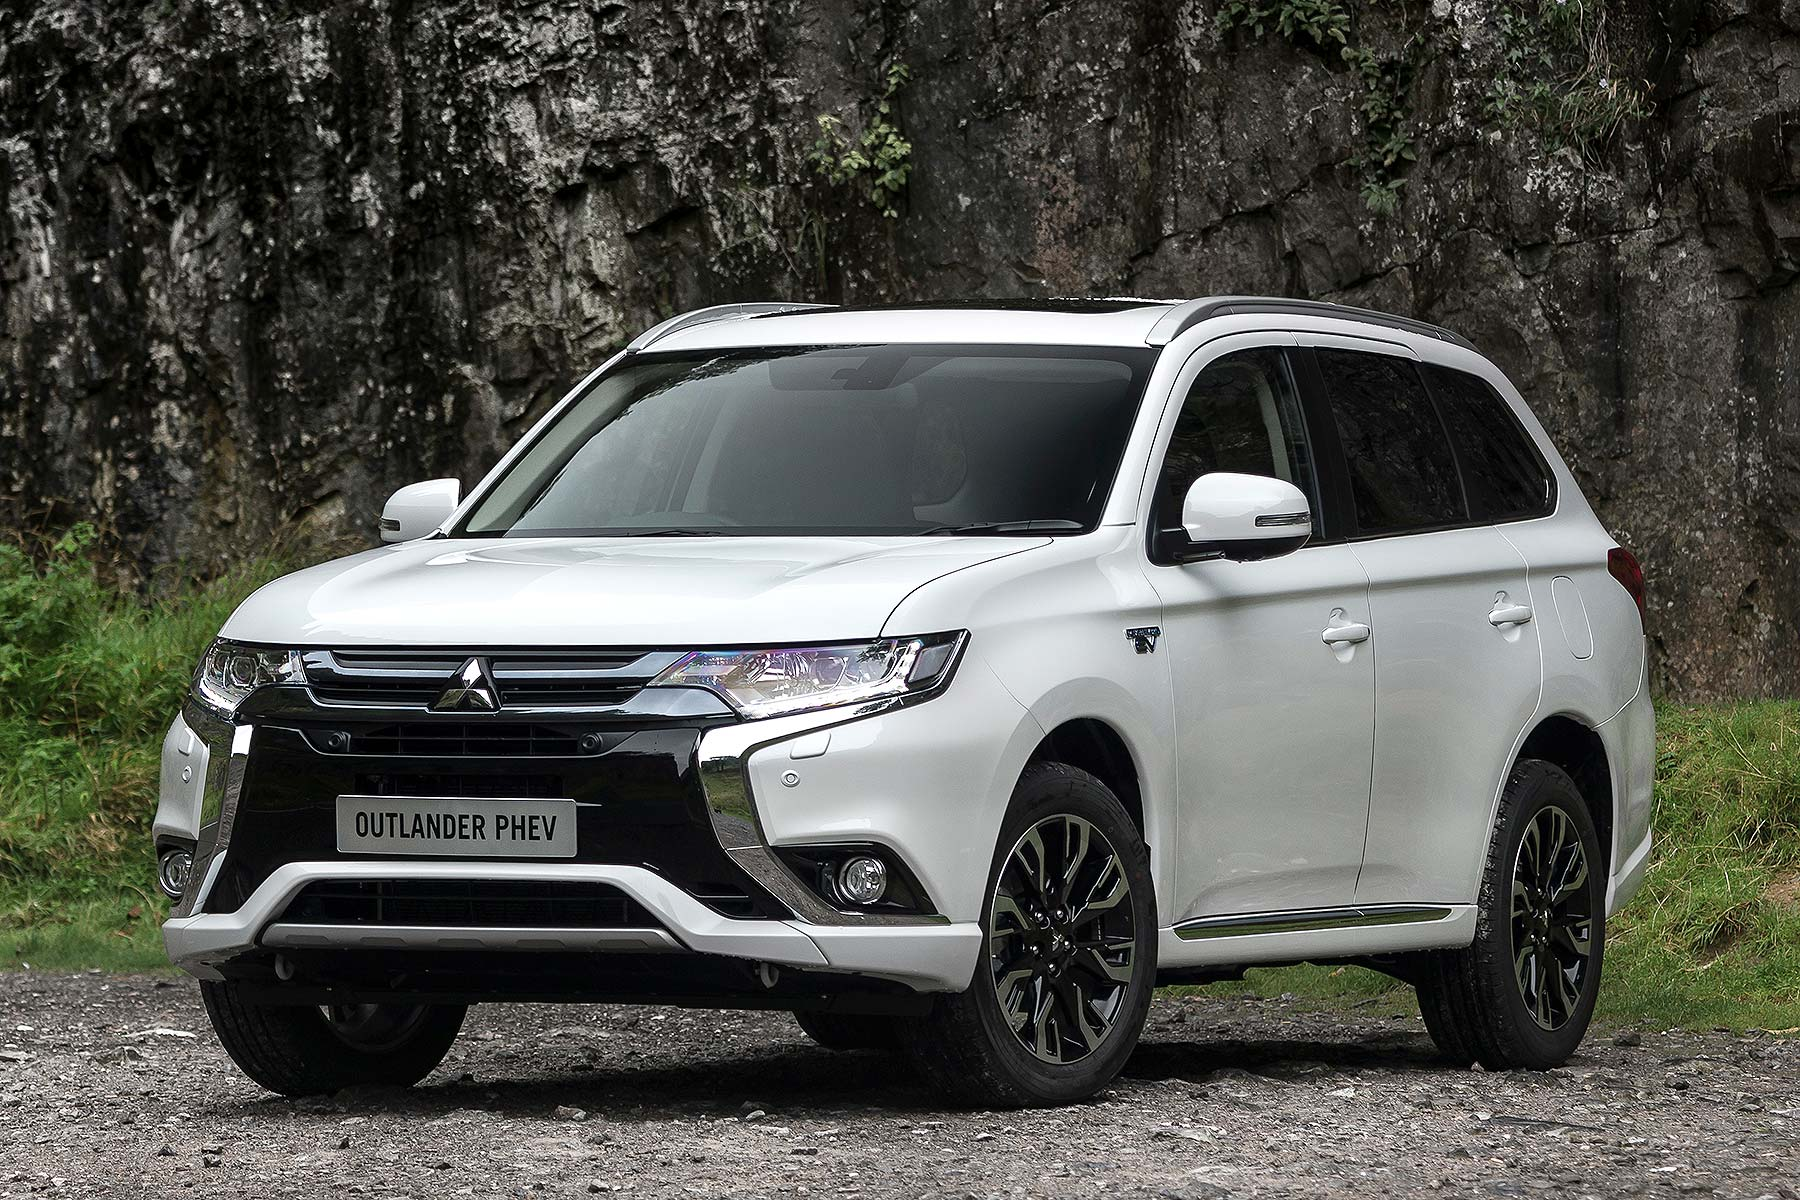 2016 mitsubishi outlander phev review uk first drive. Black Bedroom Furniture Sets. Home Design Ideas